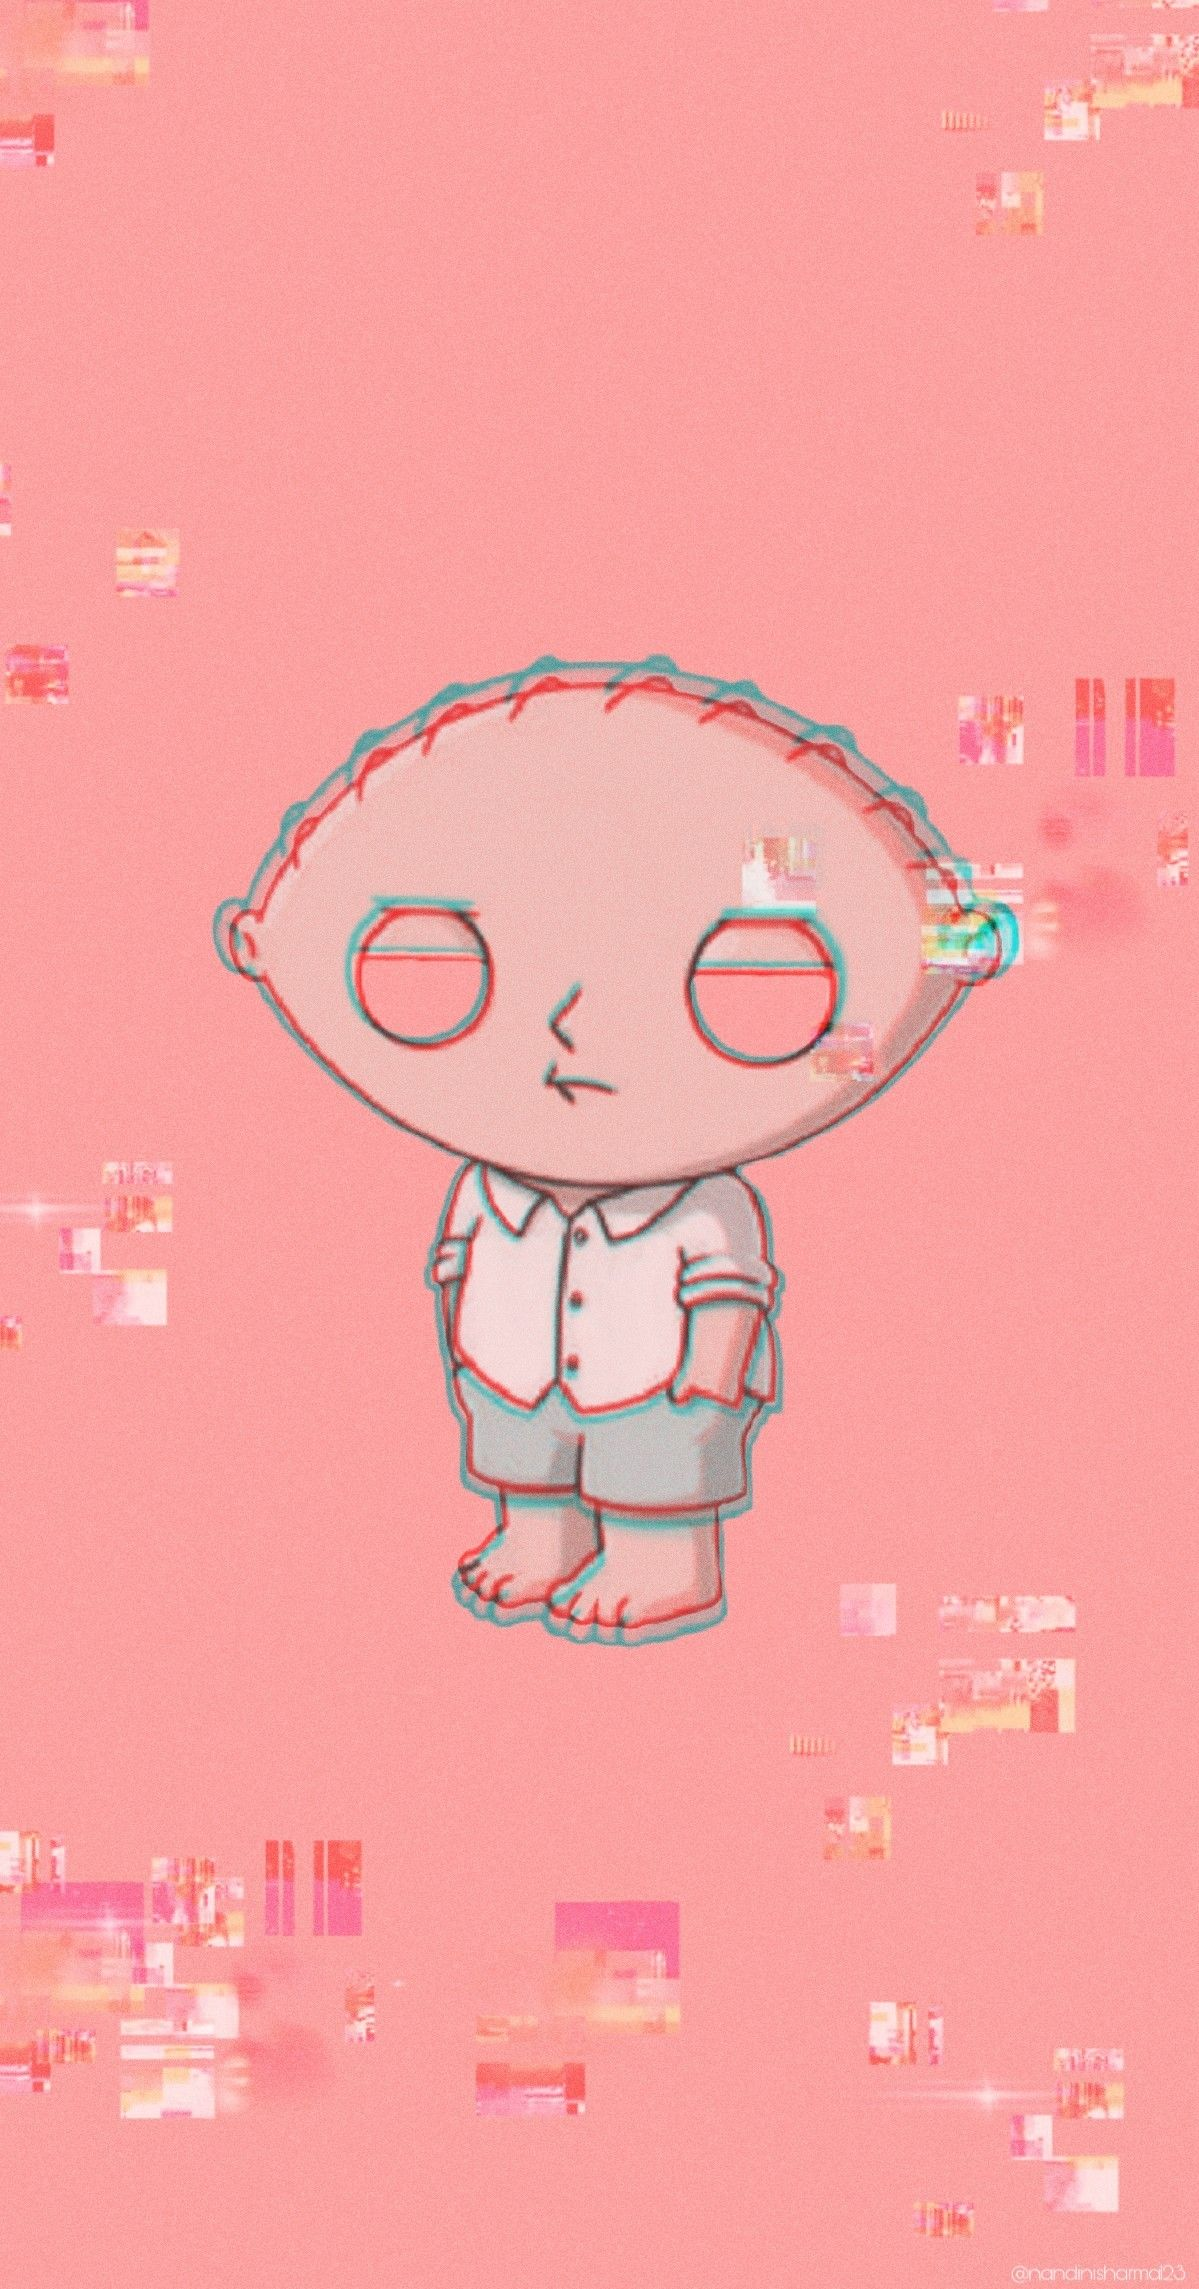 Family Guy Stewie Wallpaper By Ig Nandinisharma123 Family Guy Stewie Cartoon Wallpaper Family Guy Cartoon